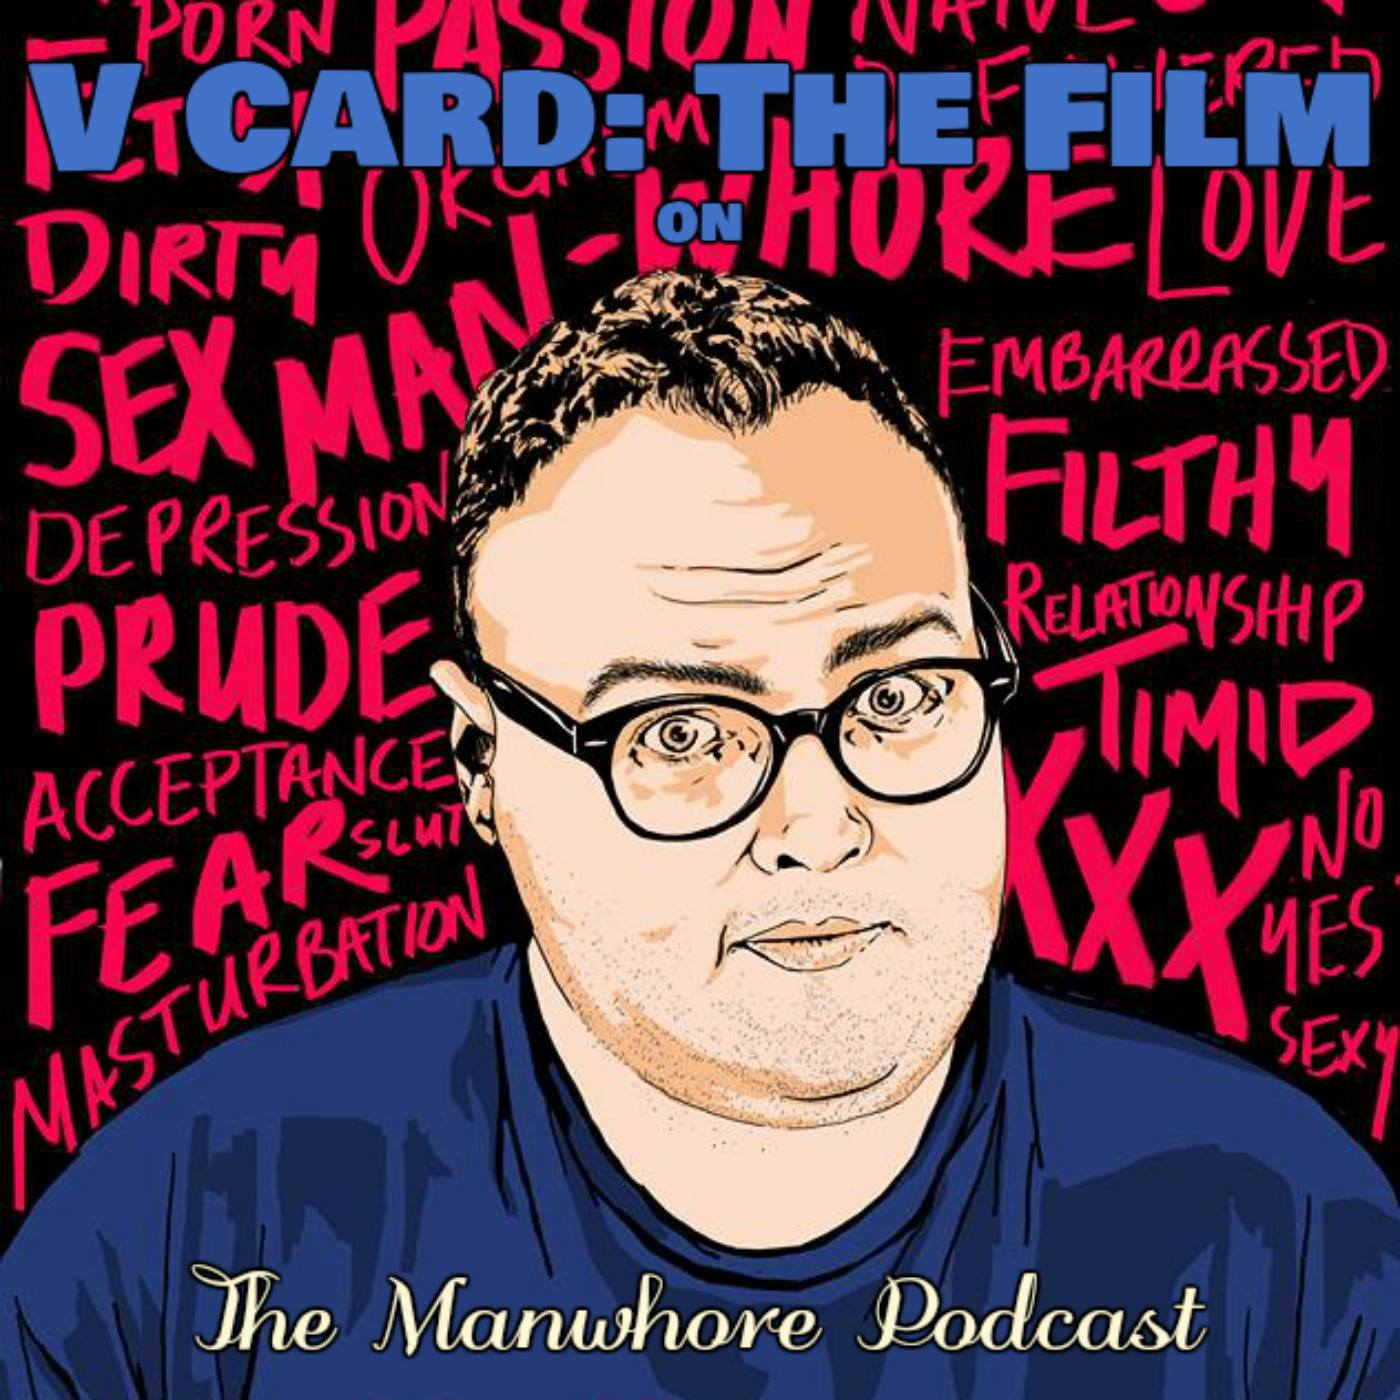 The Manwhore Podcast: A Sex-Positive Quest - Ep. 128: Rejection, Confidence, & Virgins with Dillon Birdsall